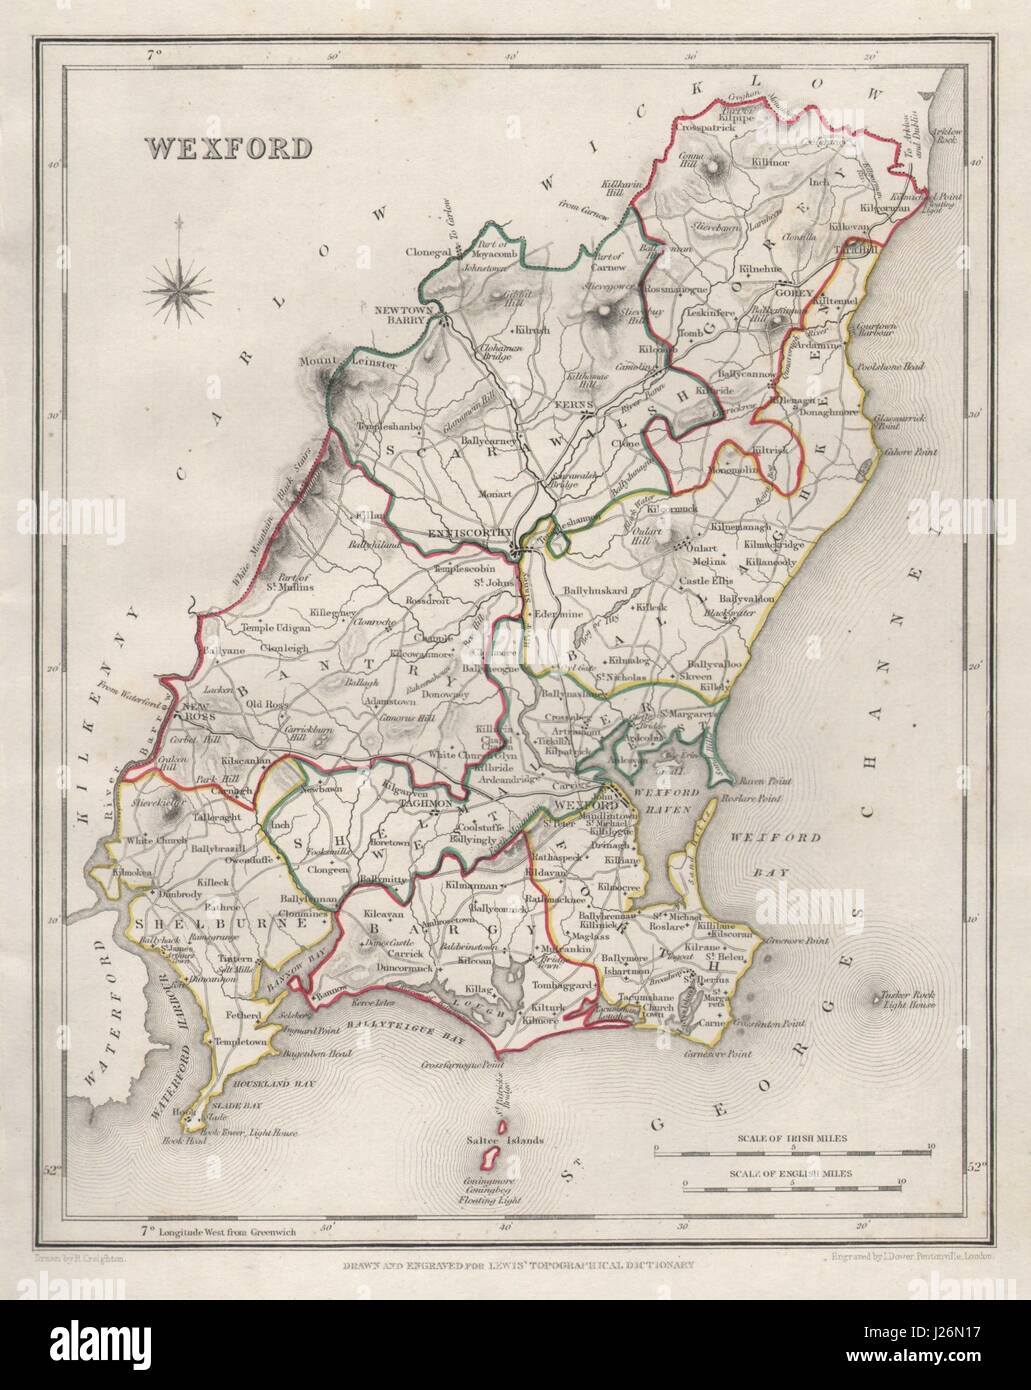 Map Of Wexford County Ireland.County Wexford Antique Map For Lewis By Creighton Dower Ireland